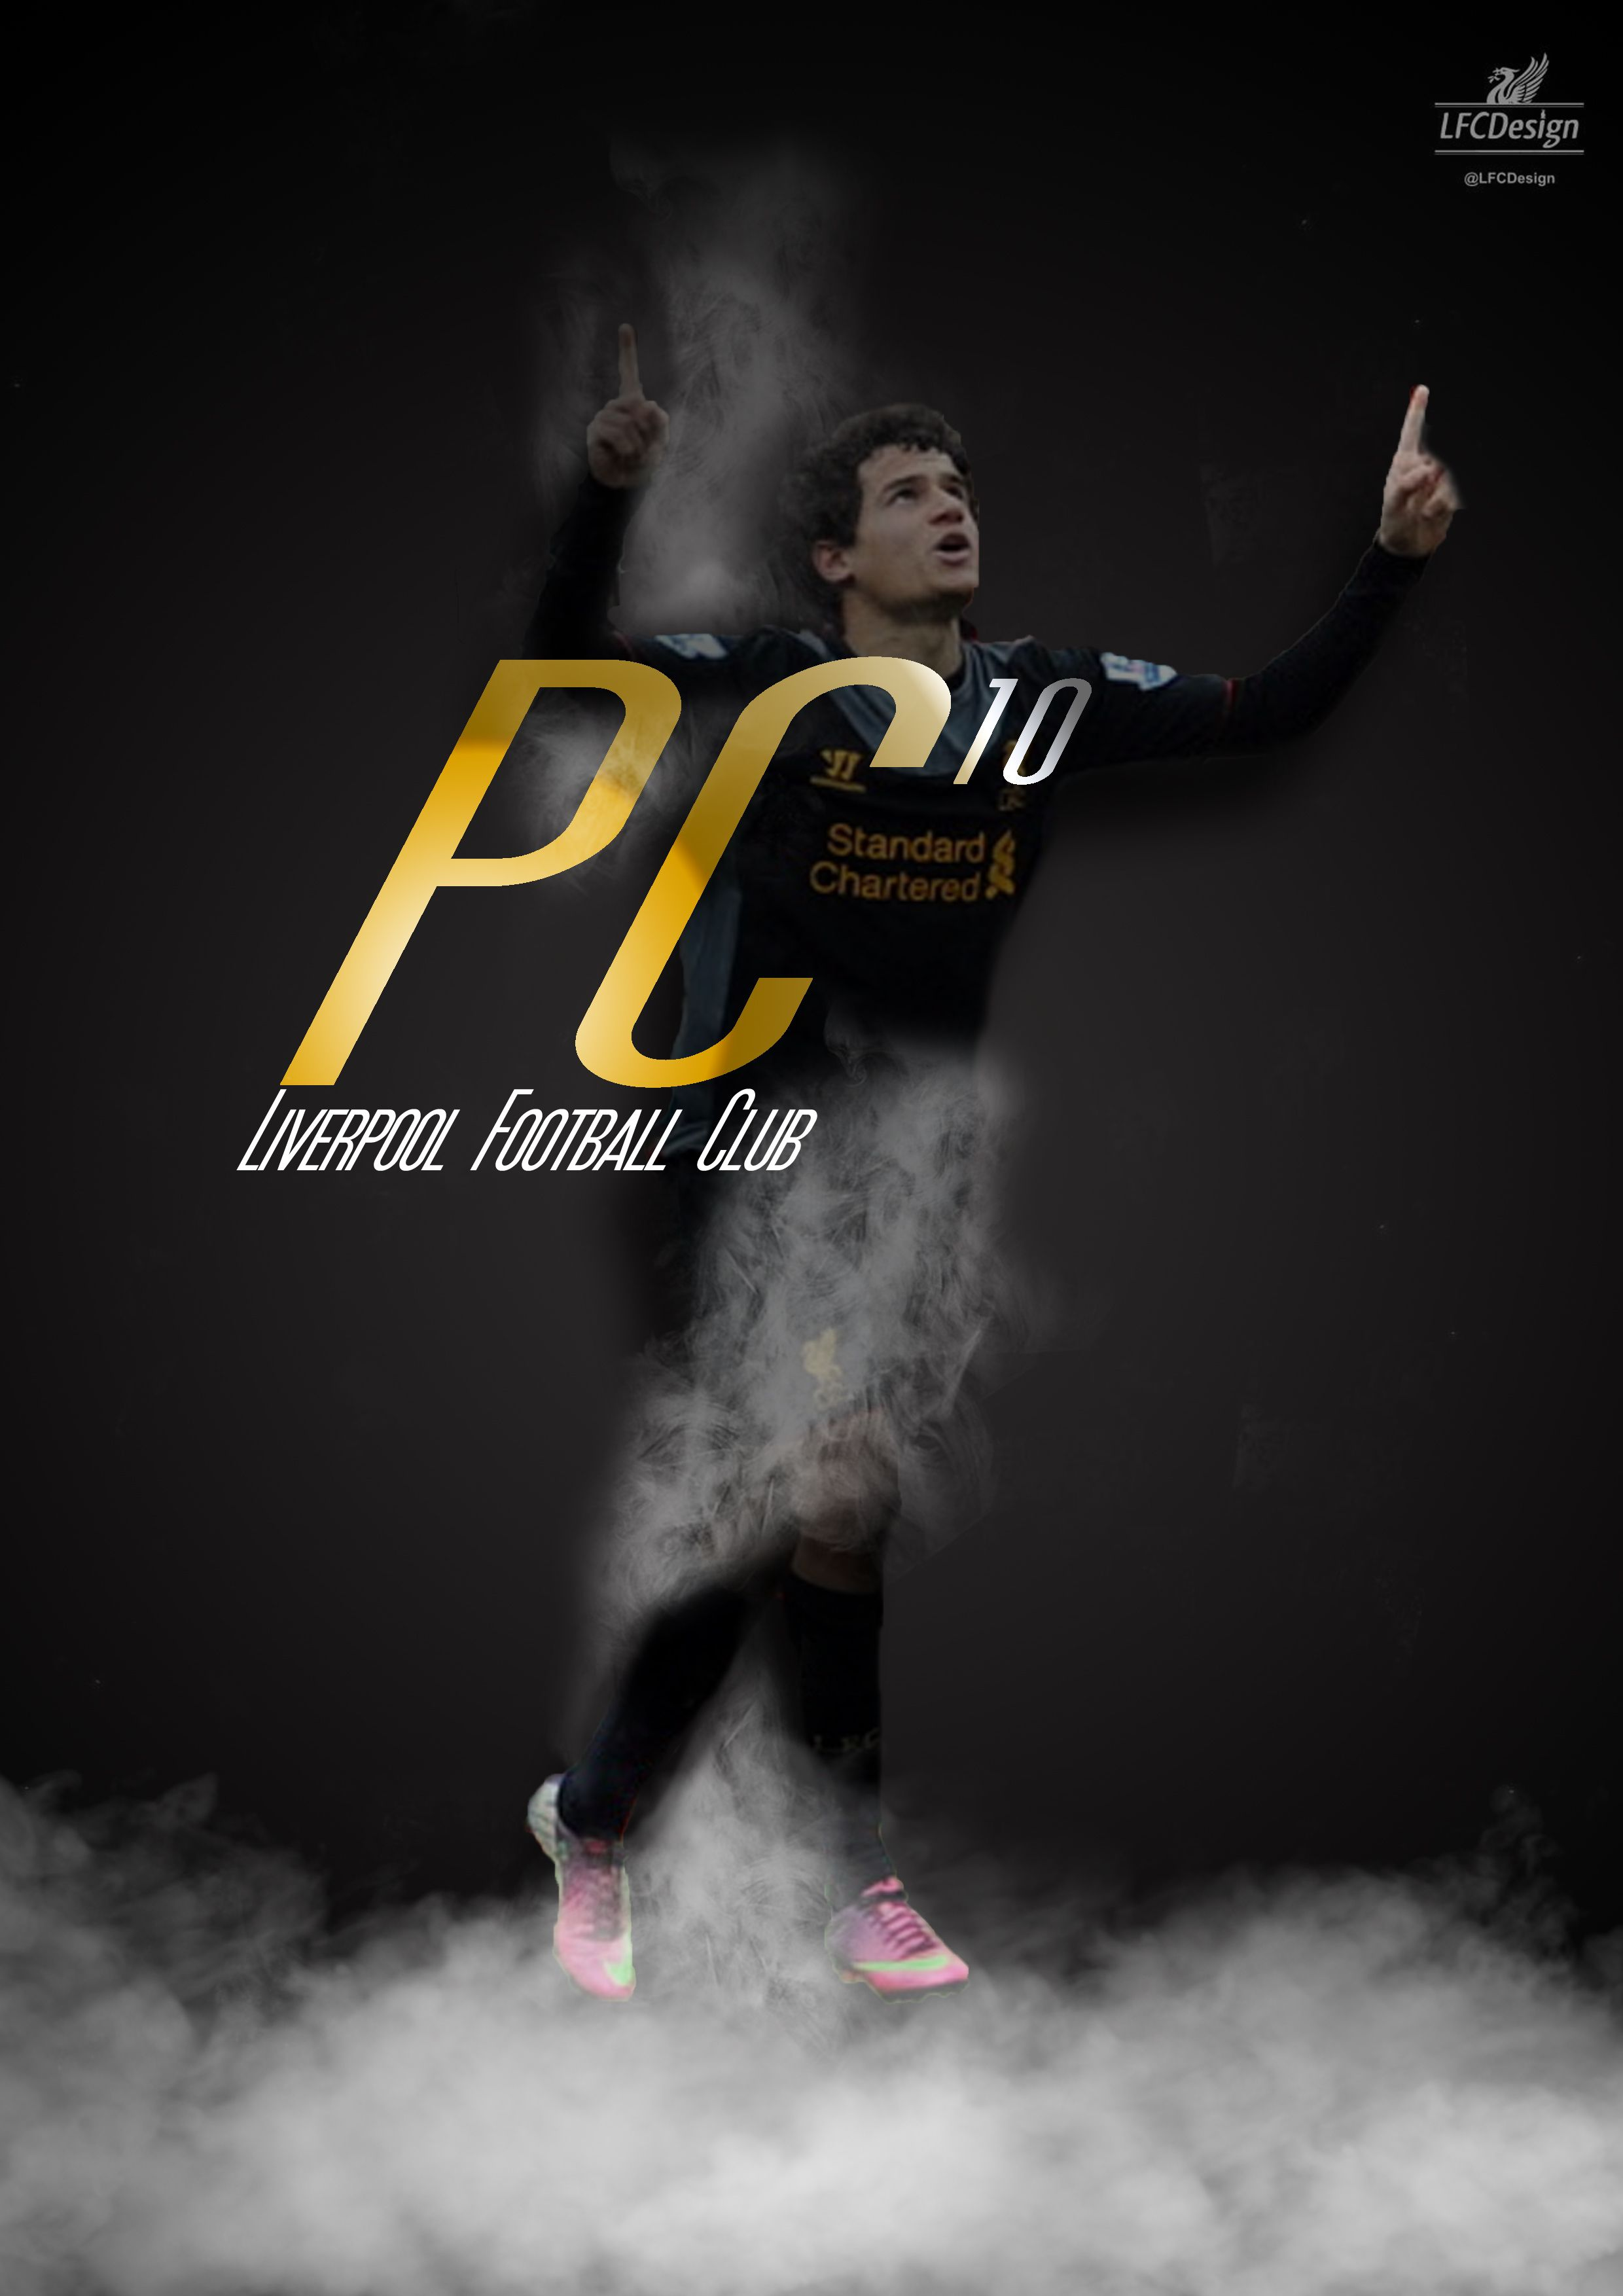 Liverpool fc wallpaper 1000 goals - Lfc Player Philippe Coutinho Poster Iphone Background